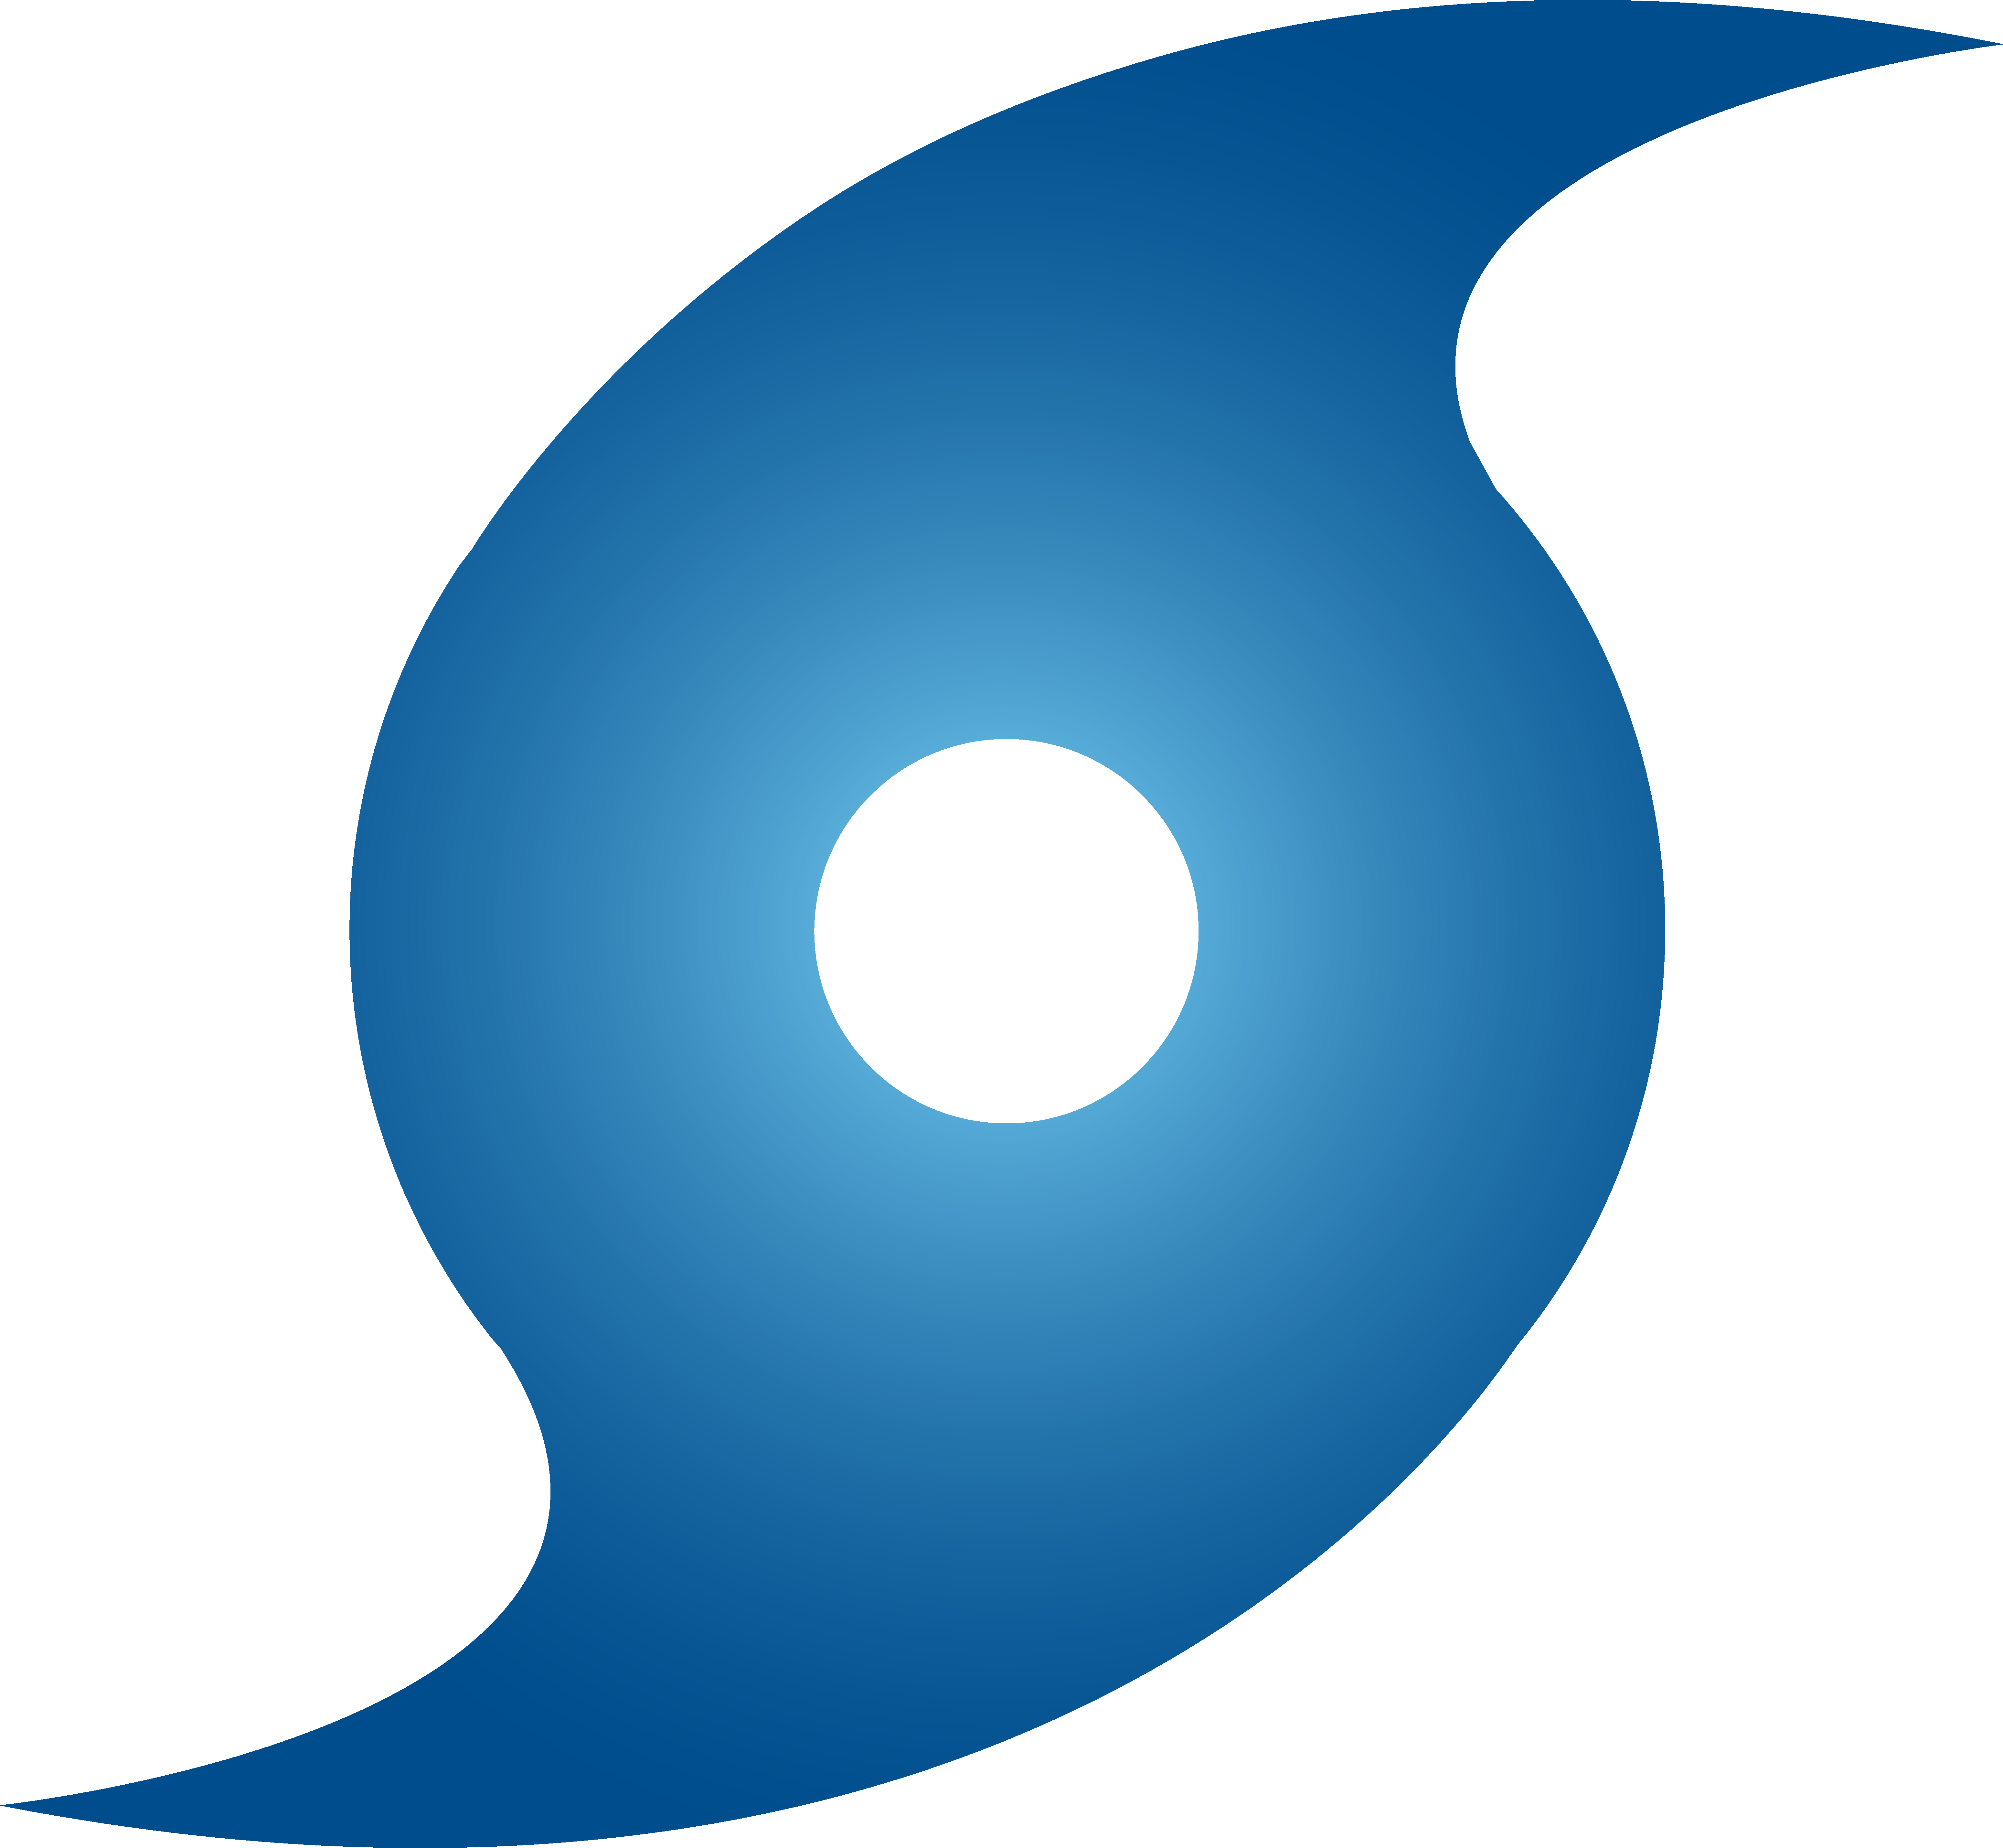 Hurricane Symbol Blue image - vector clip art online, royalty free ...